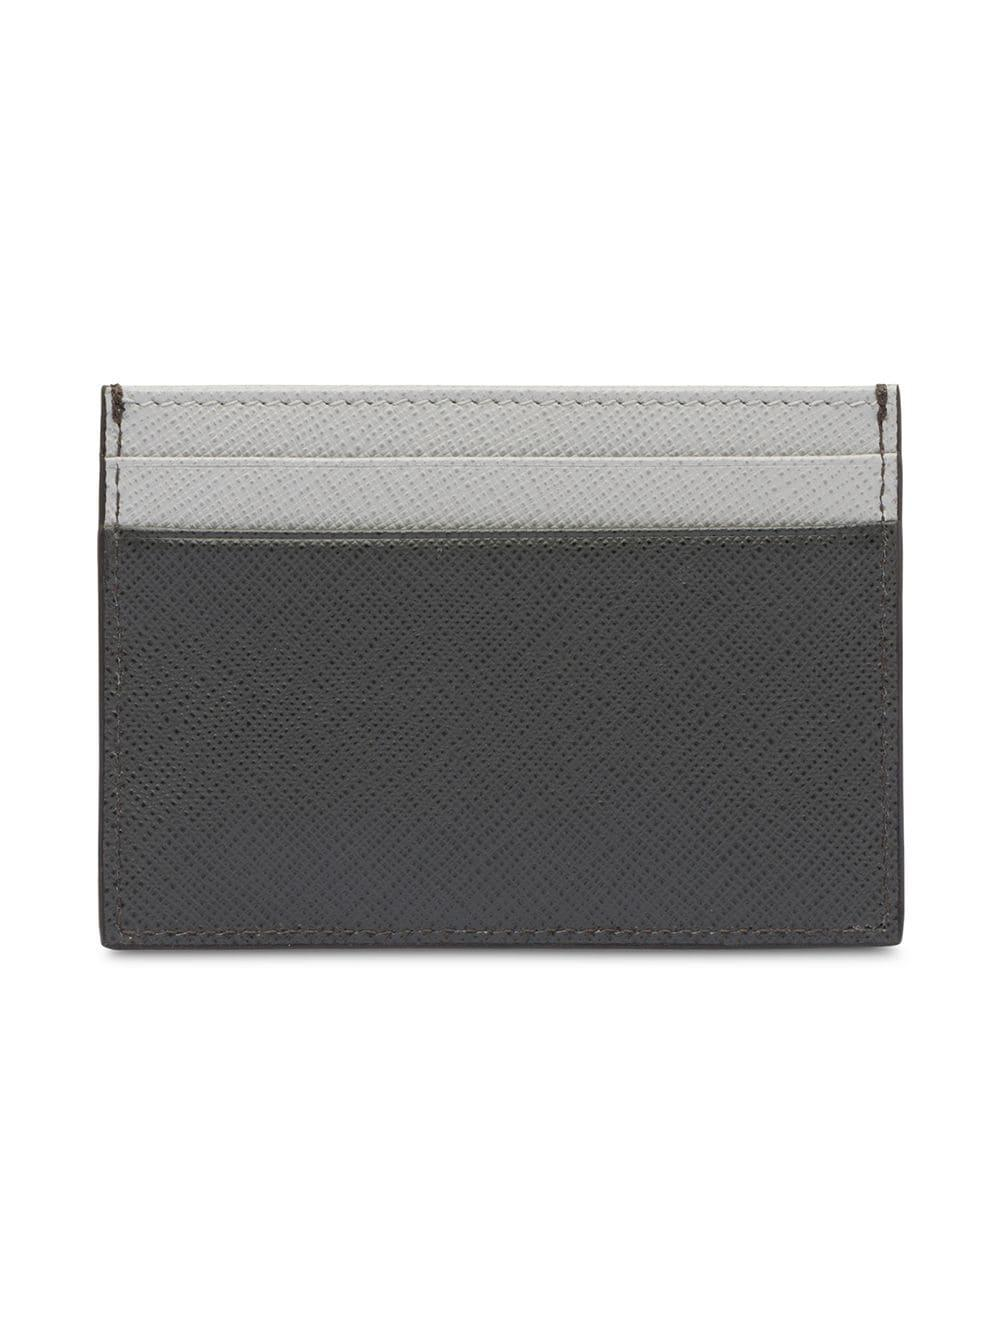 cd59e4a5d35be Lyst - Prada Saffiano Leather Card Holder in Gray for Men